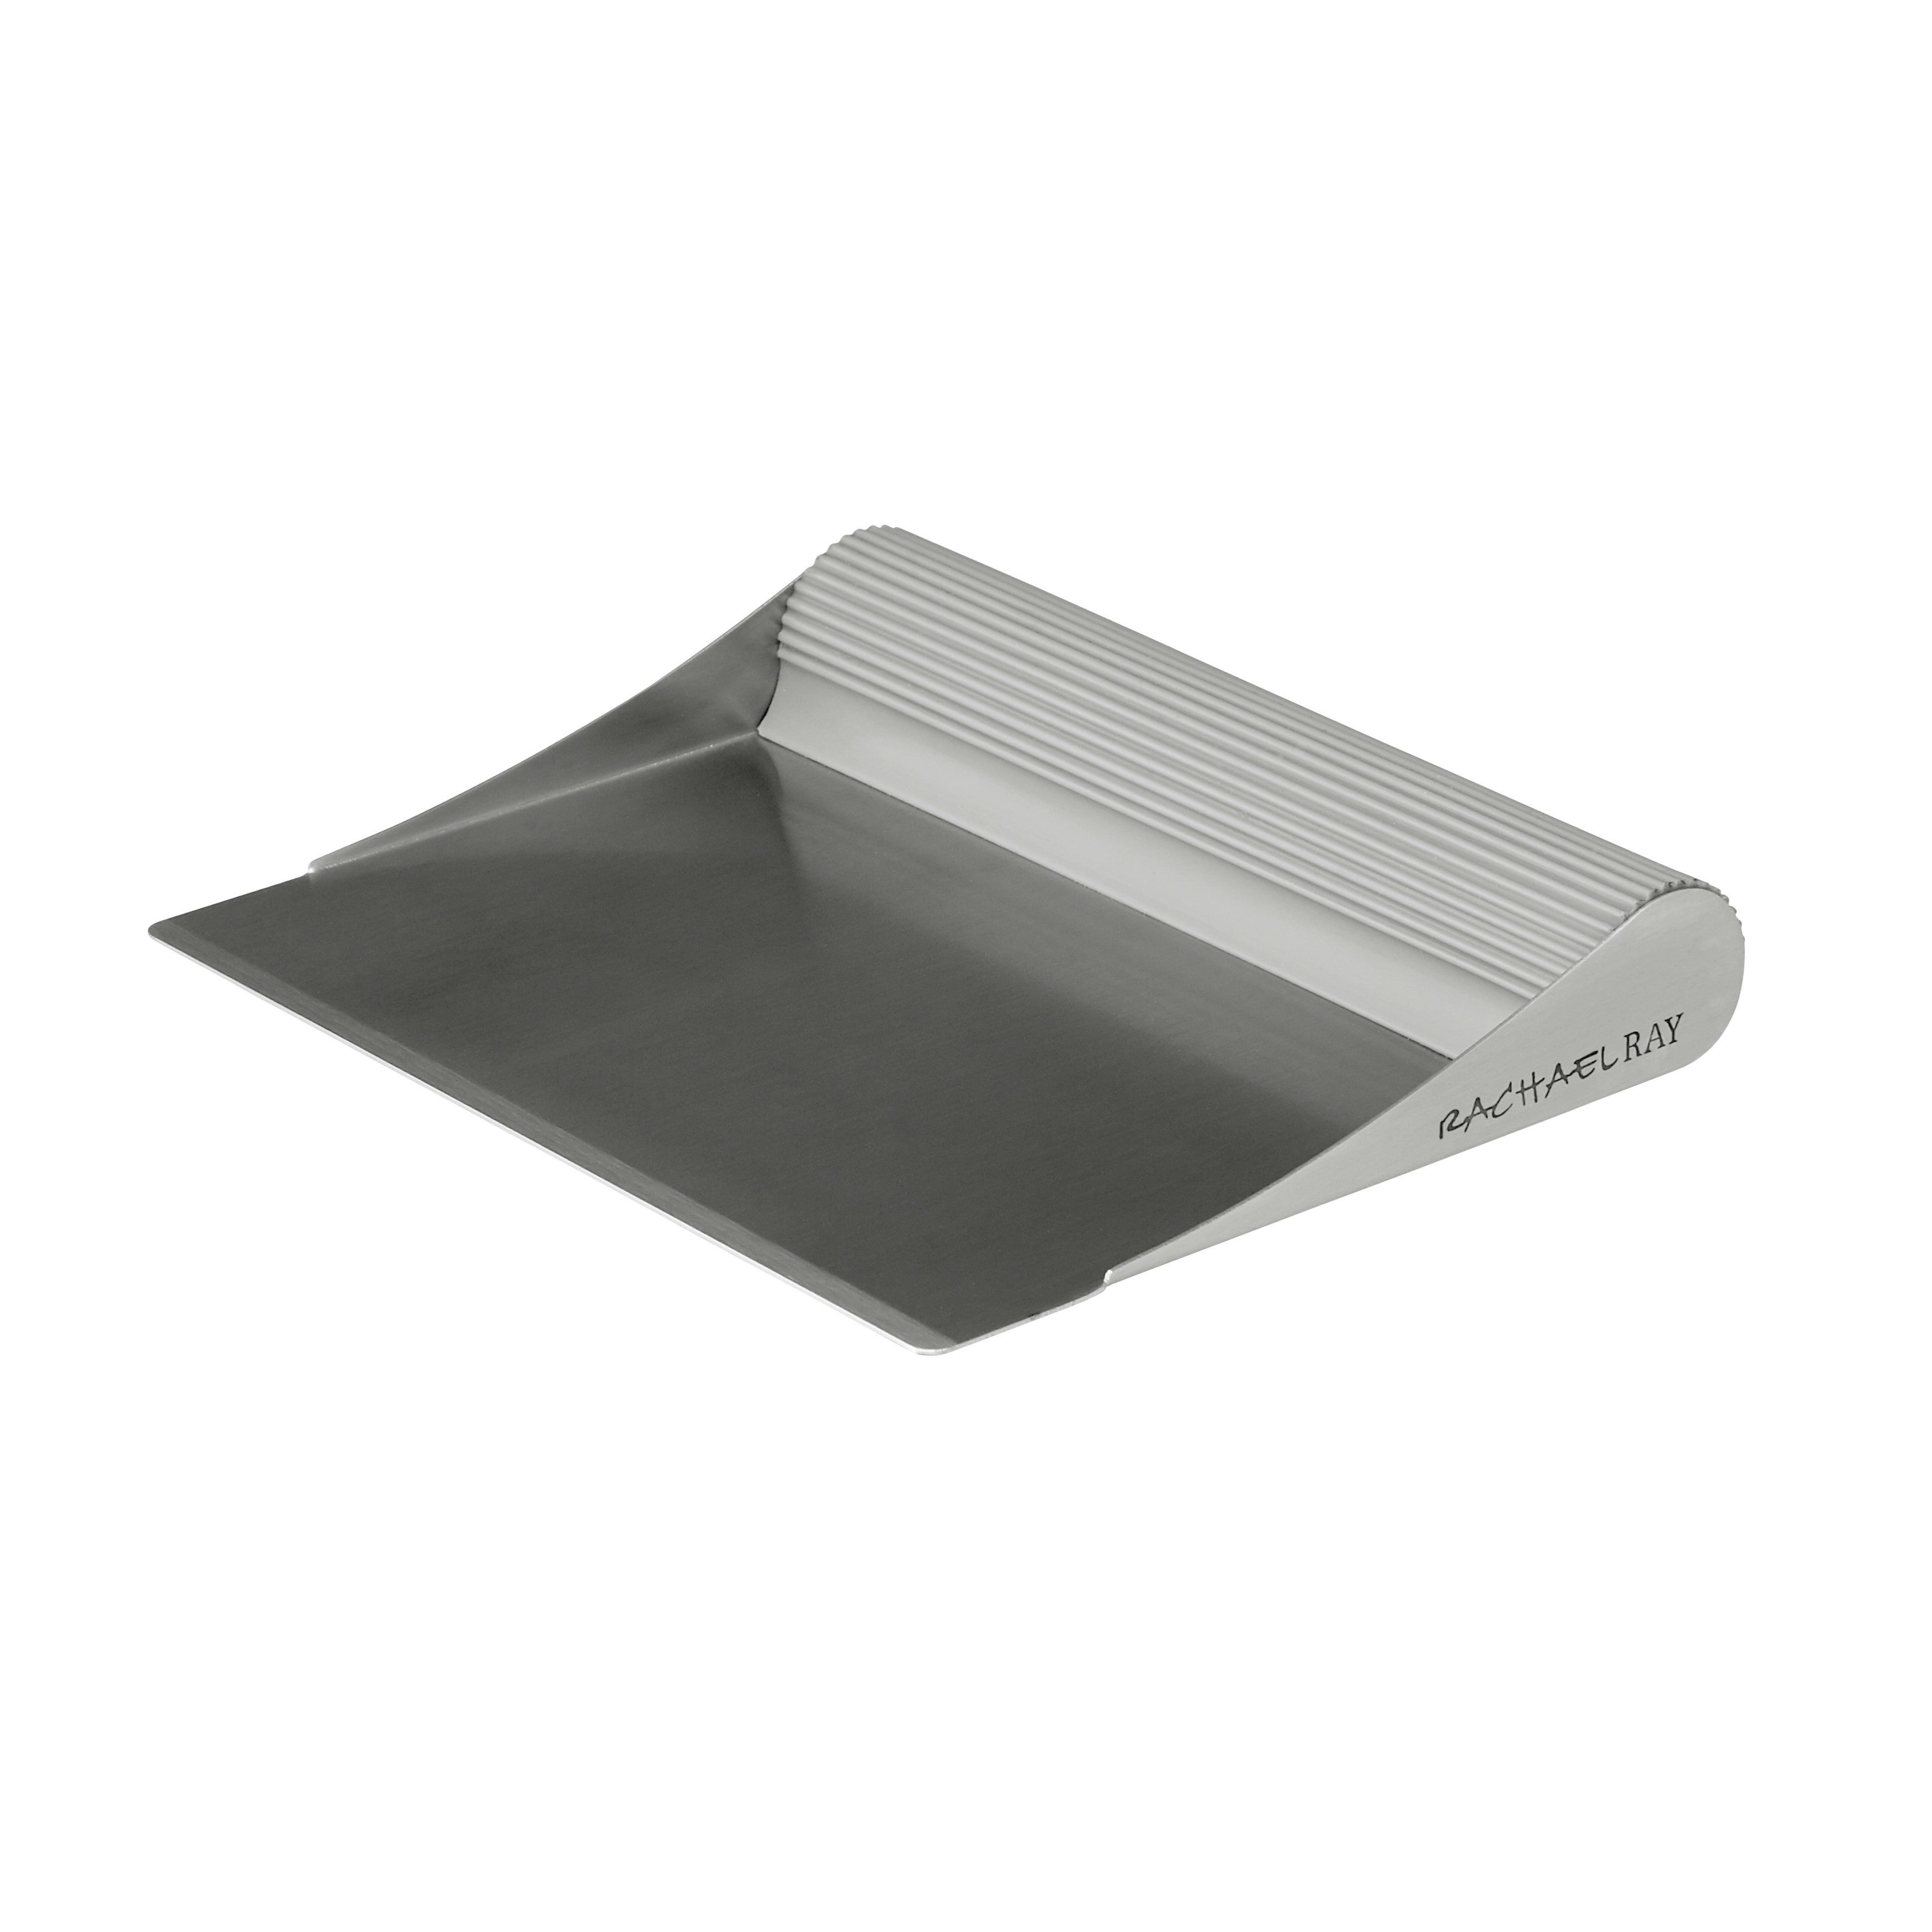 Rachael Ray Tools and Gadgets Stainless Steel Bench Scrap...